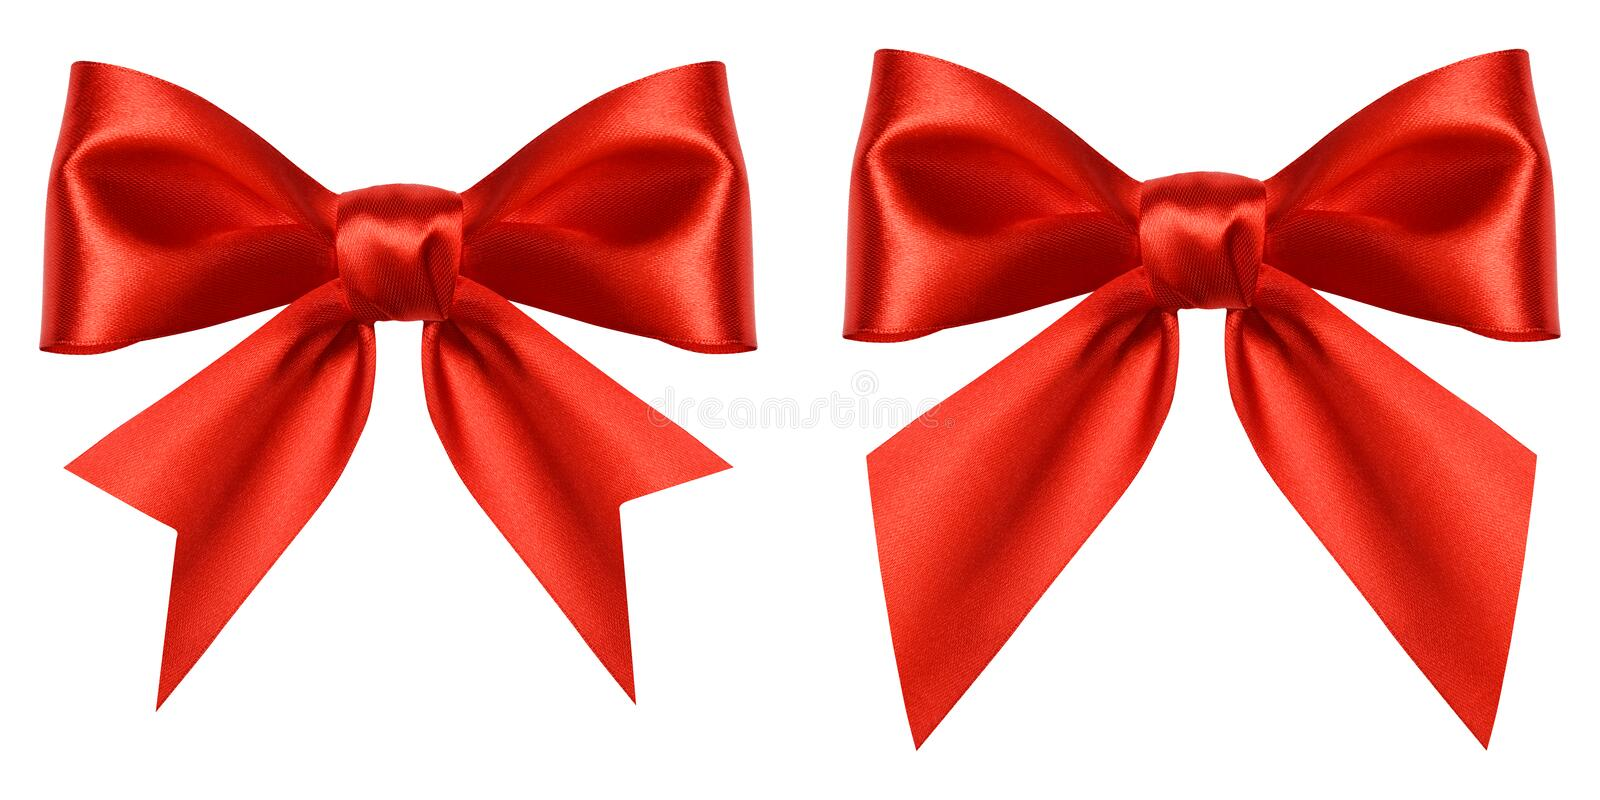 Red gift bow isolated on white background. Ribbon bow of shiny satin closeup. Holiday Christmas decoration as design stock photography